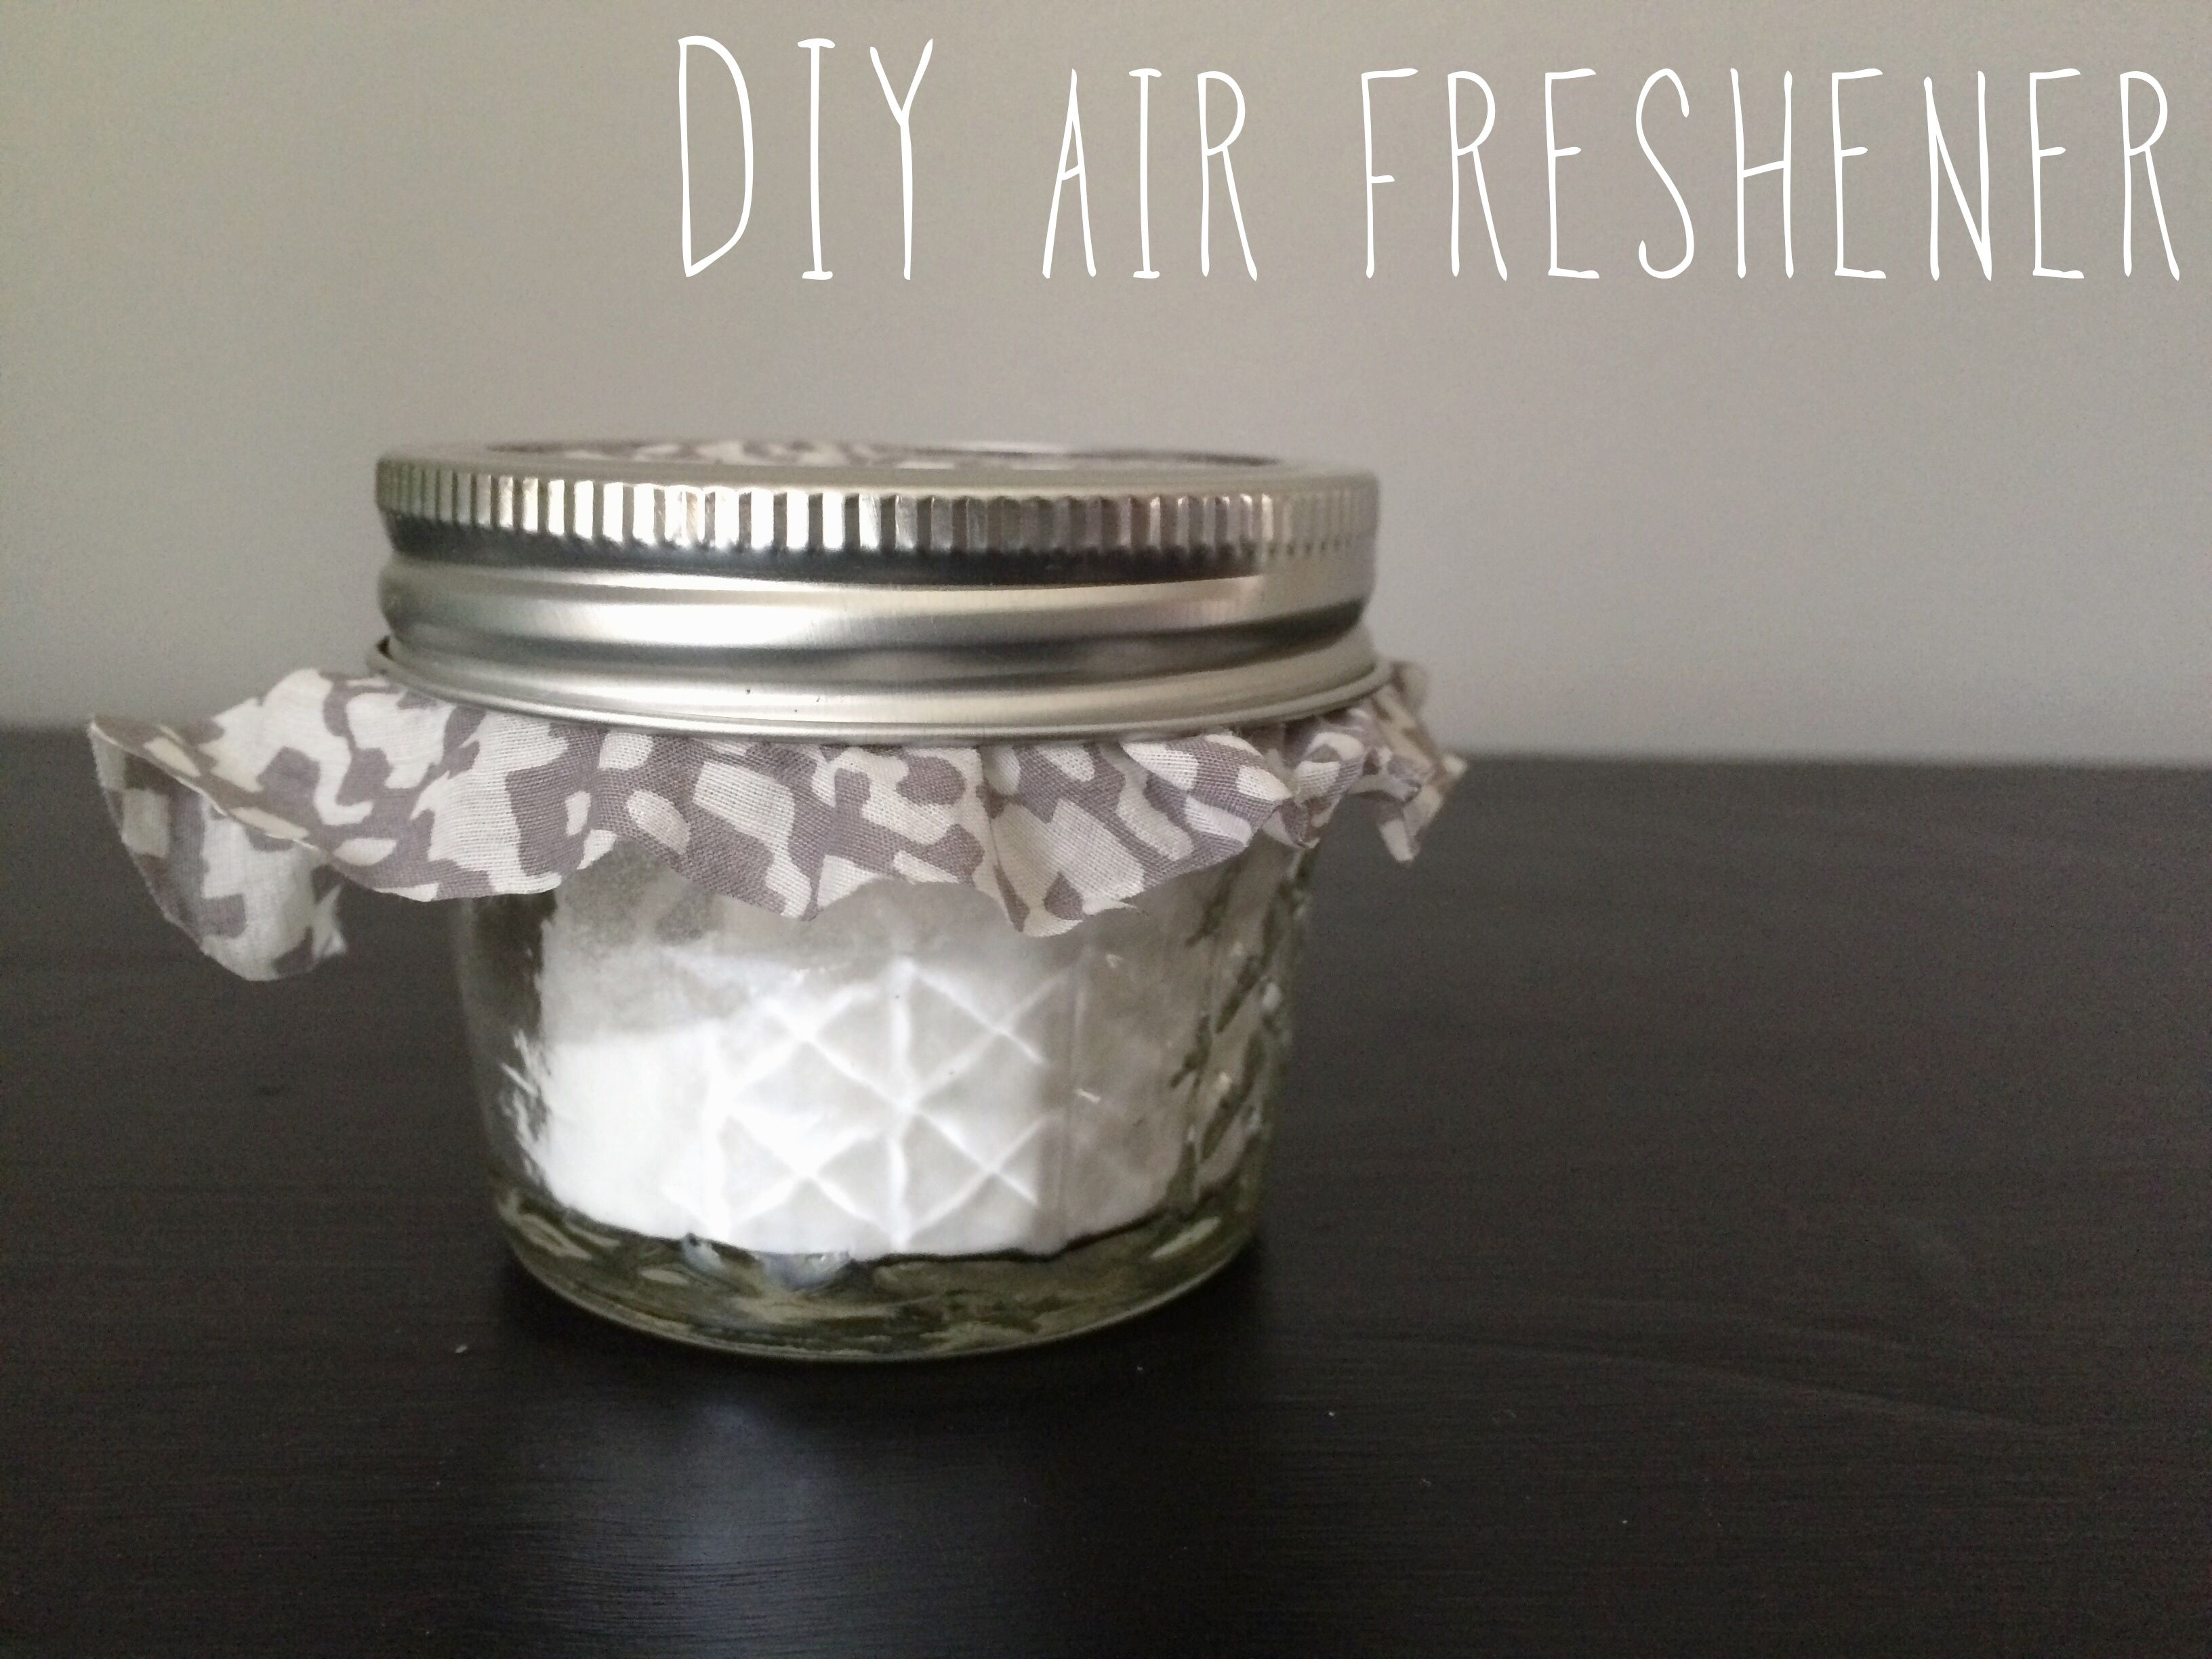 DIY Air freshener; made with baking soda and essential oil